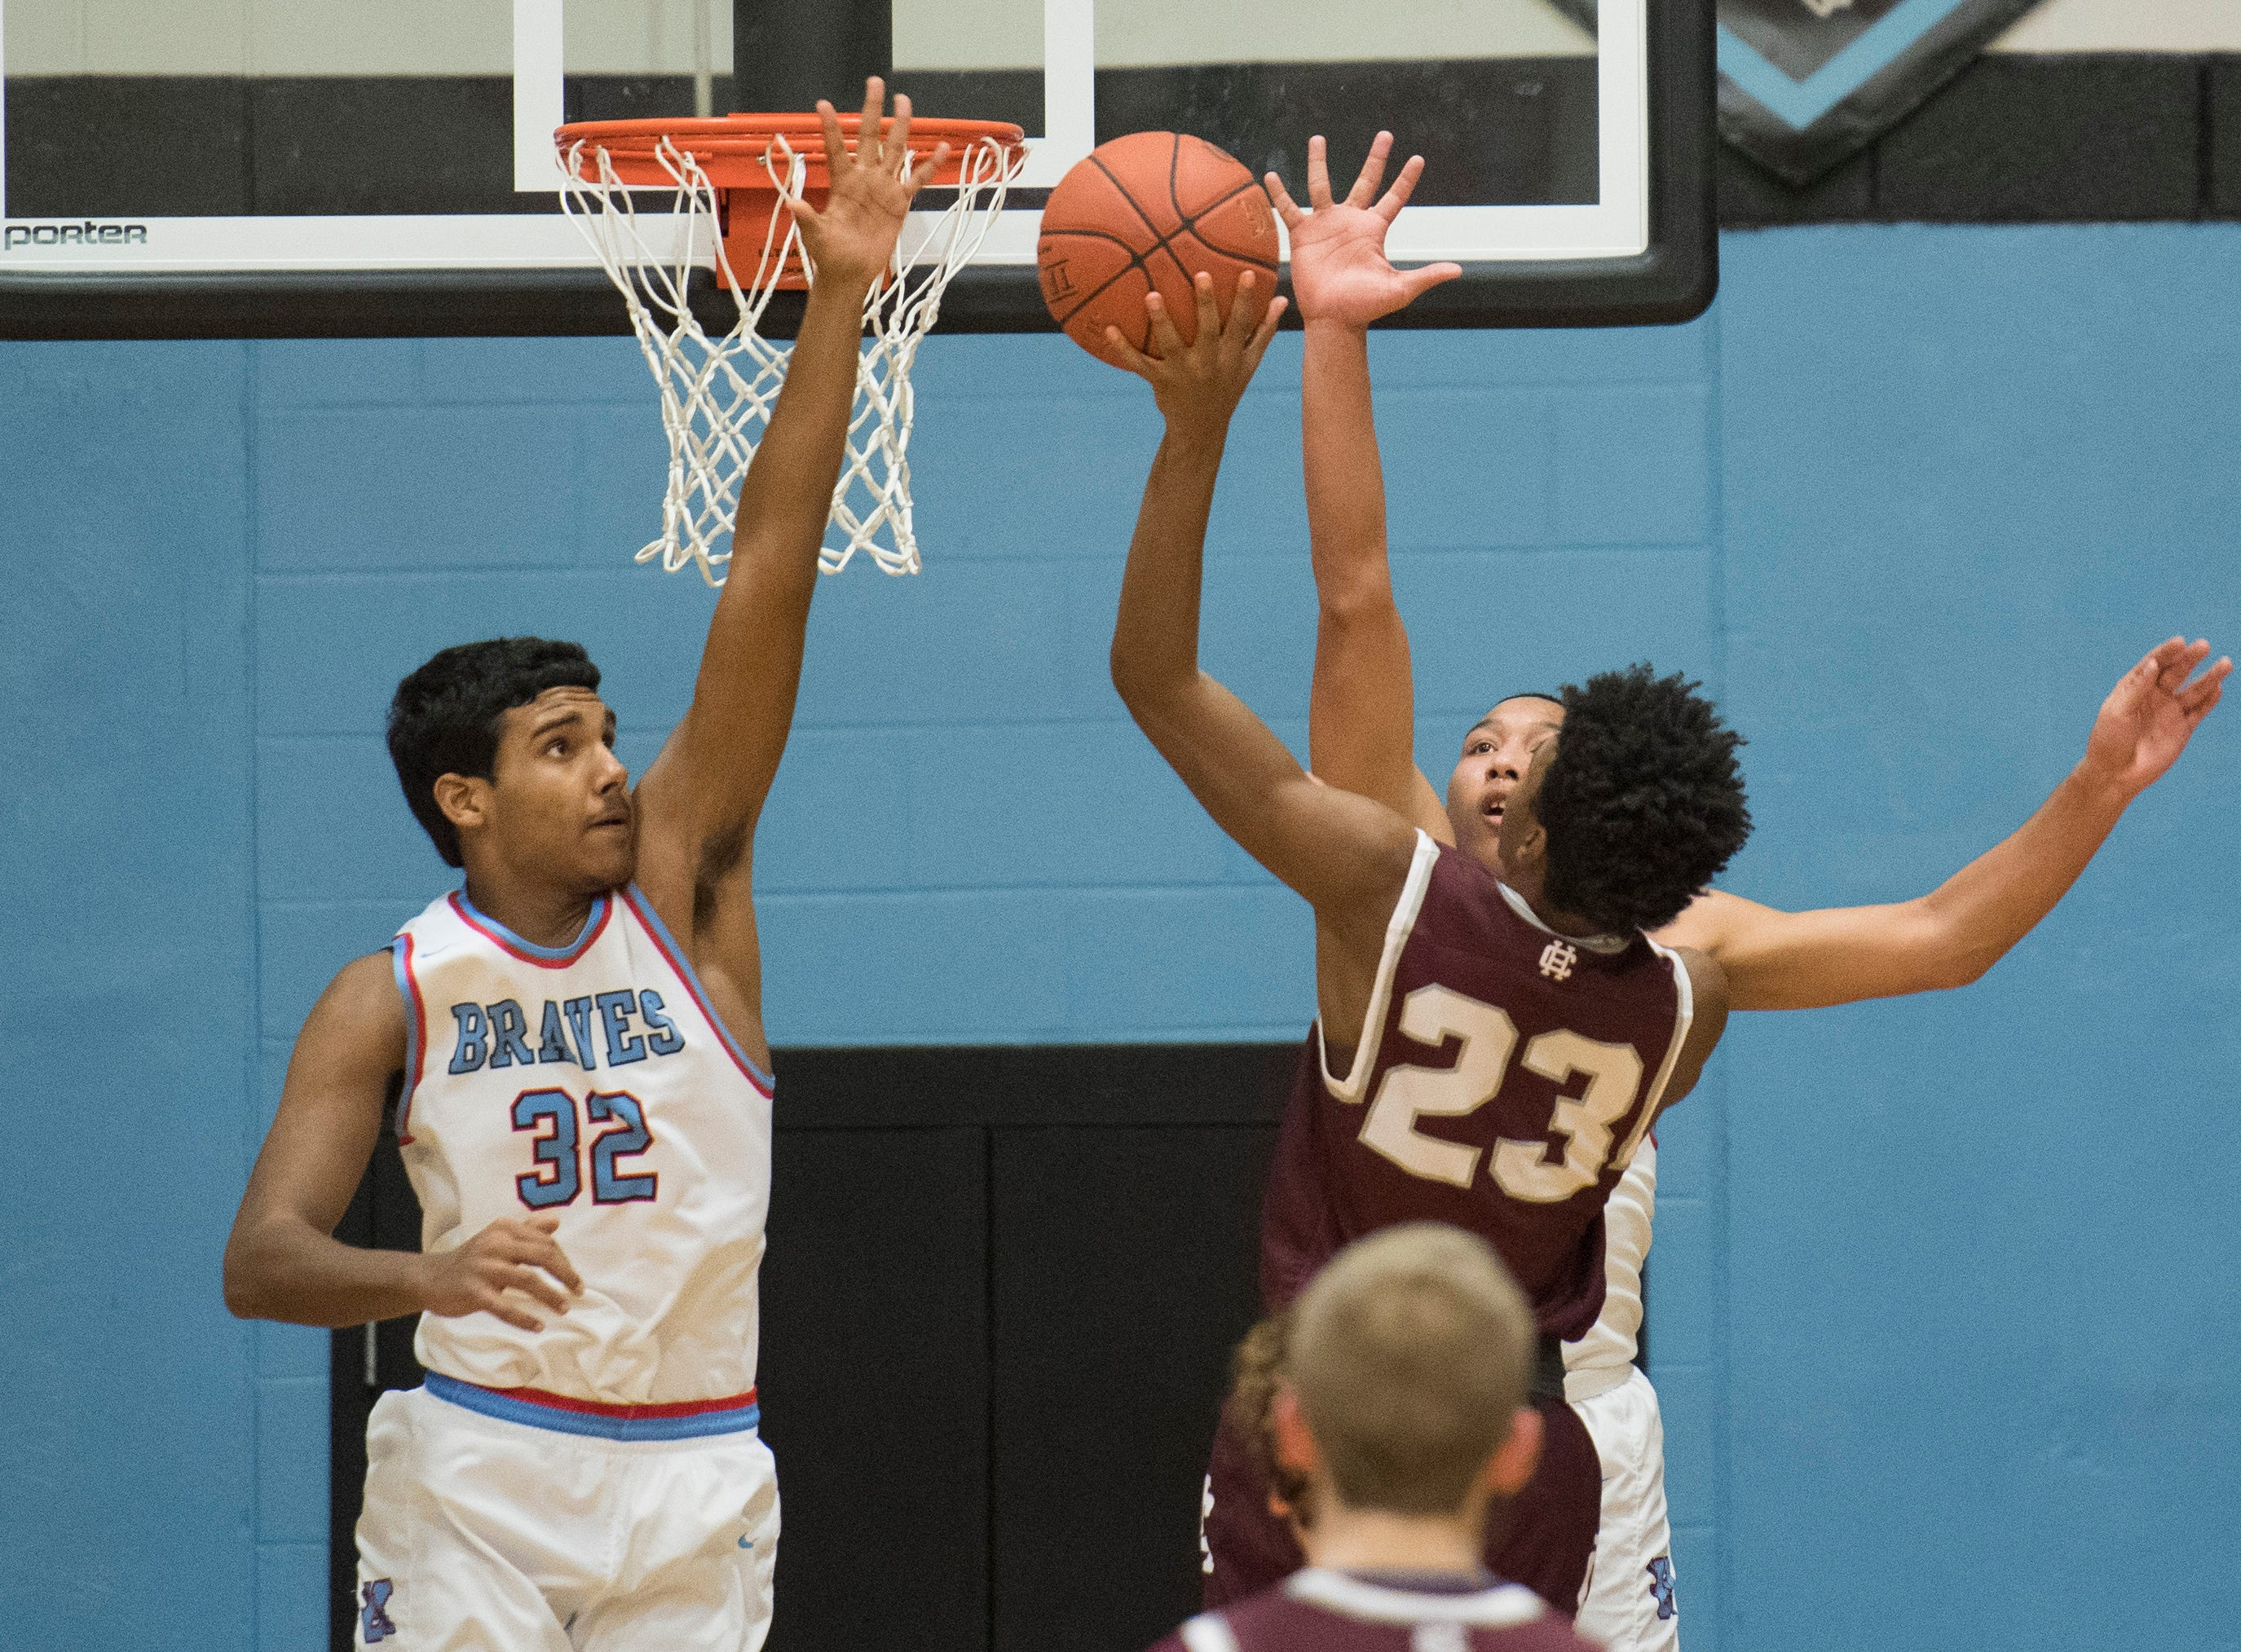 Union County's Clem Johnson (32) and Union County's Kaleb Kanipe (2) attempts to block Henderson's Myekel Sanners (23) shot during the 2019 Sixth District championship game against the Henderson County Colonels at Union County High School Thursday, Feb. 21, 2019.